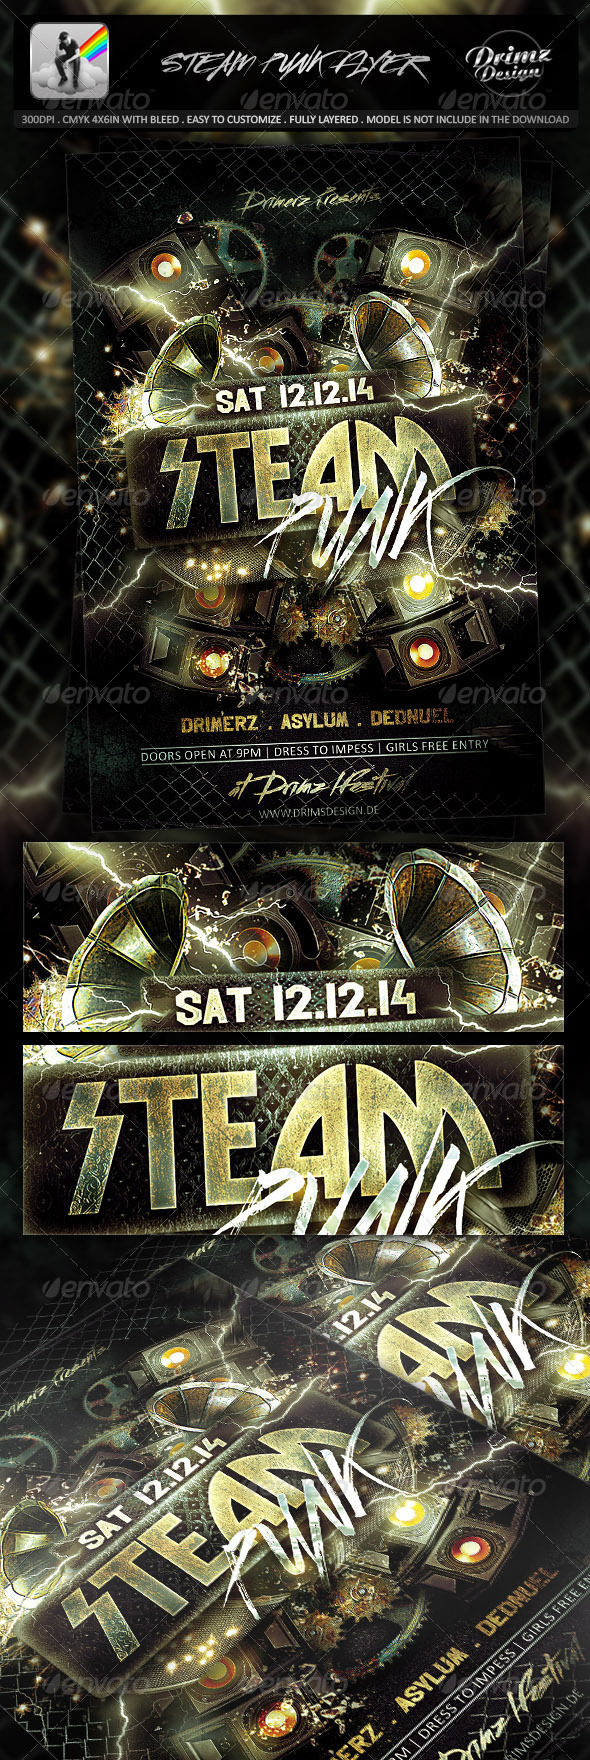 Steam Punk Flyer - Events Flyers